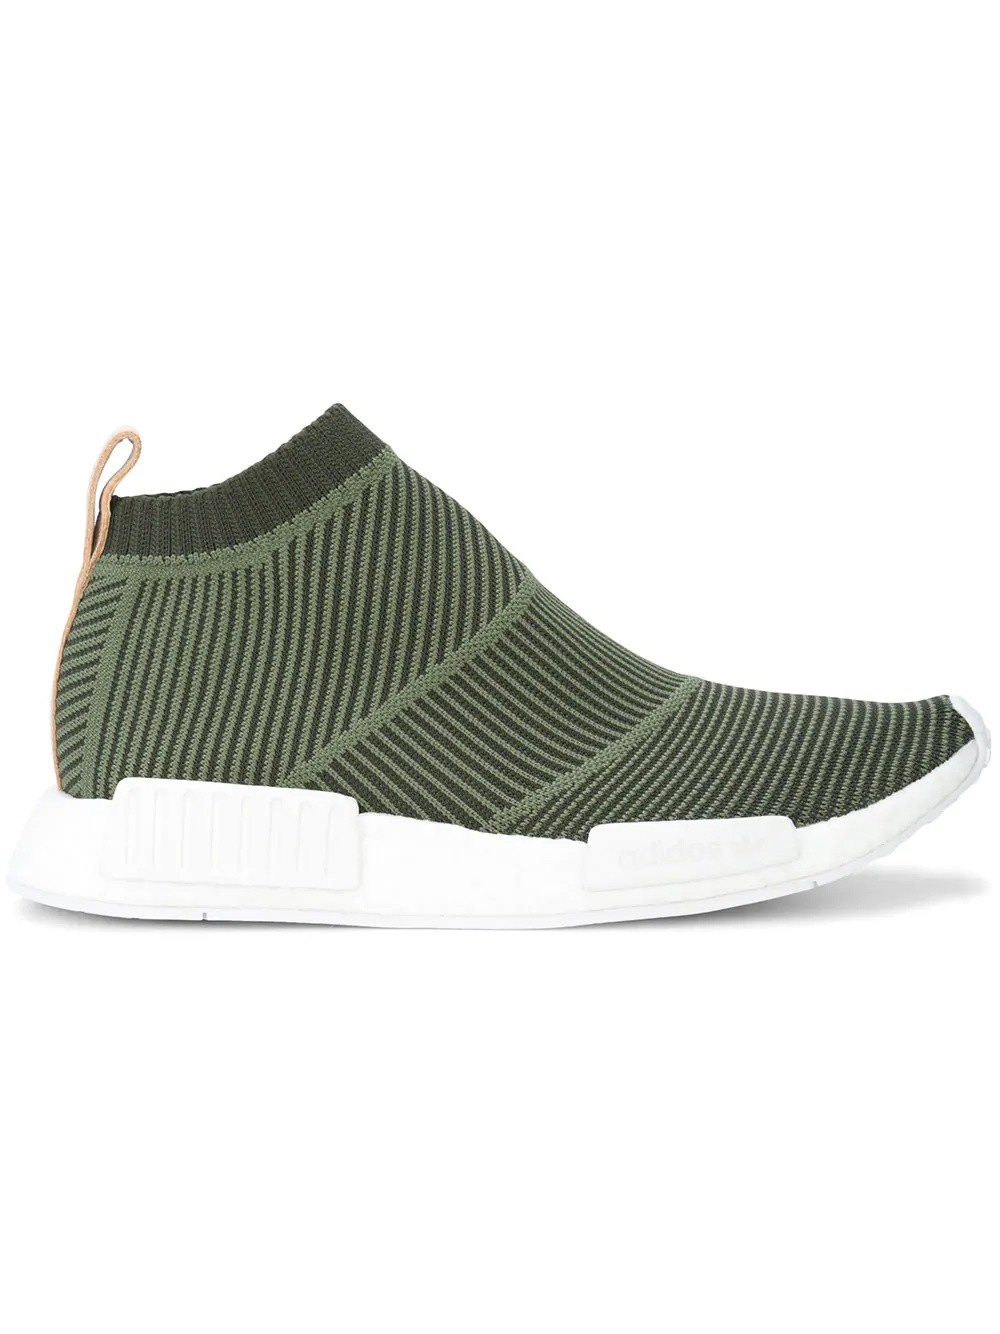 Adidas Originals NMD CS1 City Sock PK Primeknit B37638 Kaki/Olive